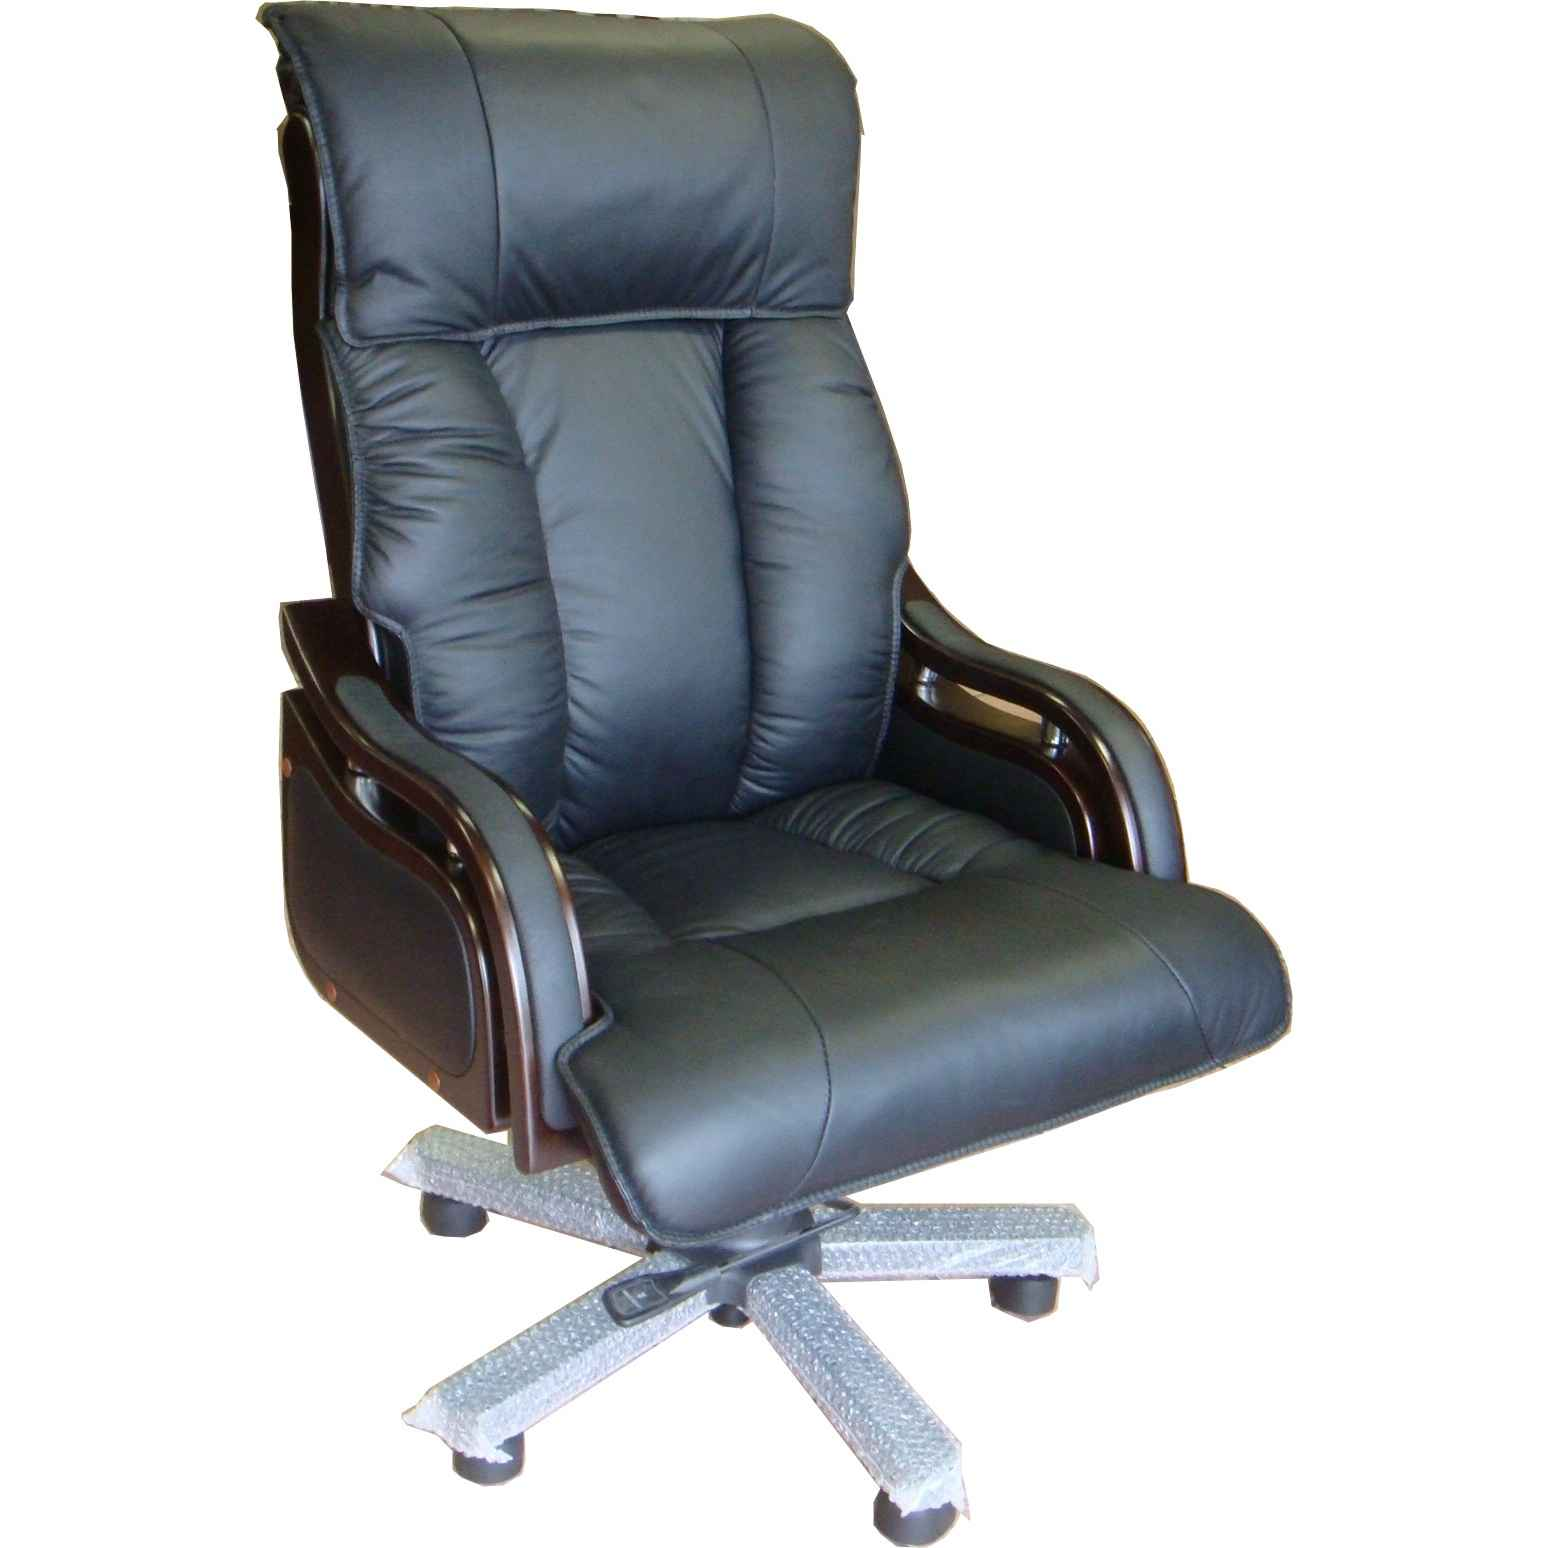 black leather desk chairs bathtub lift chair furniture